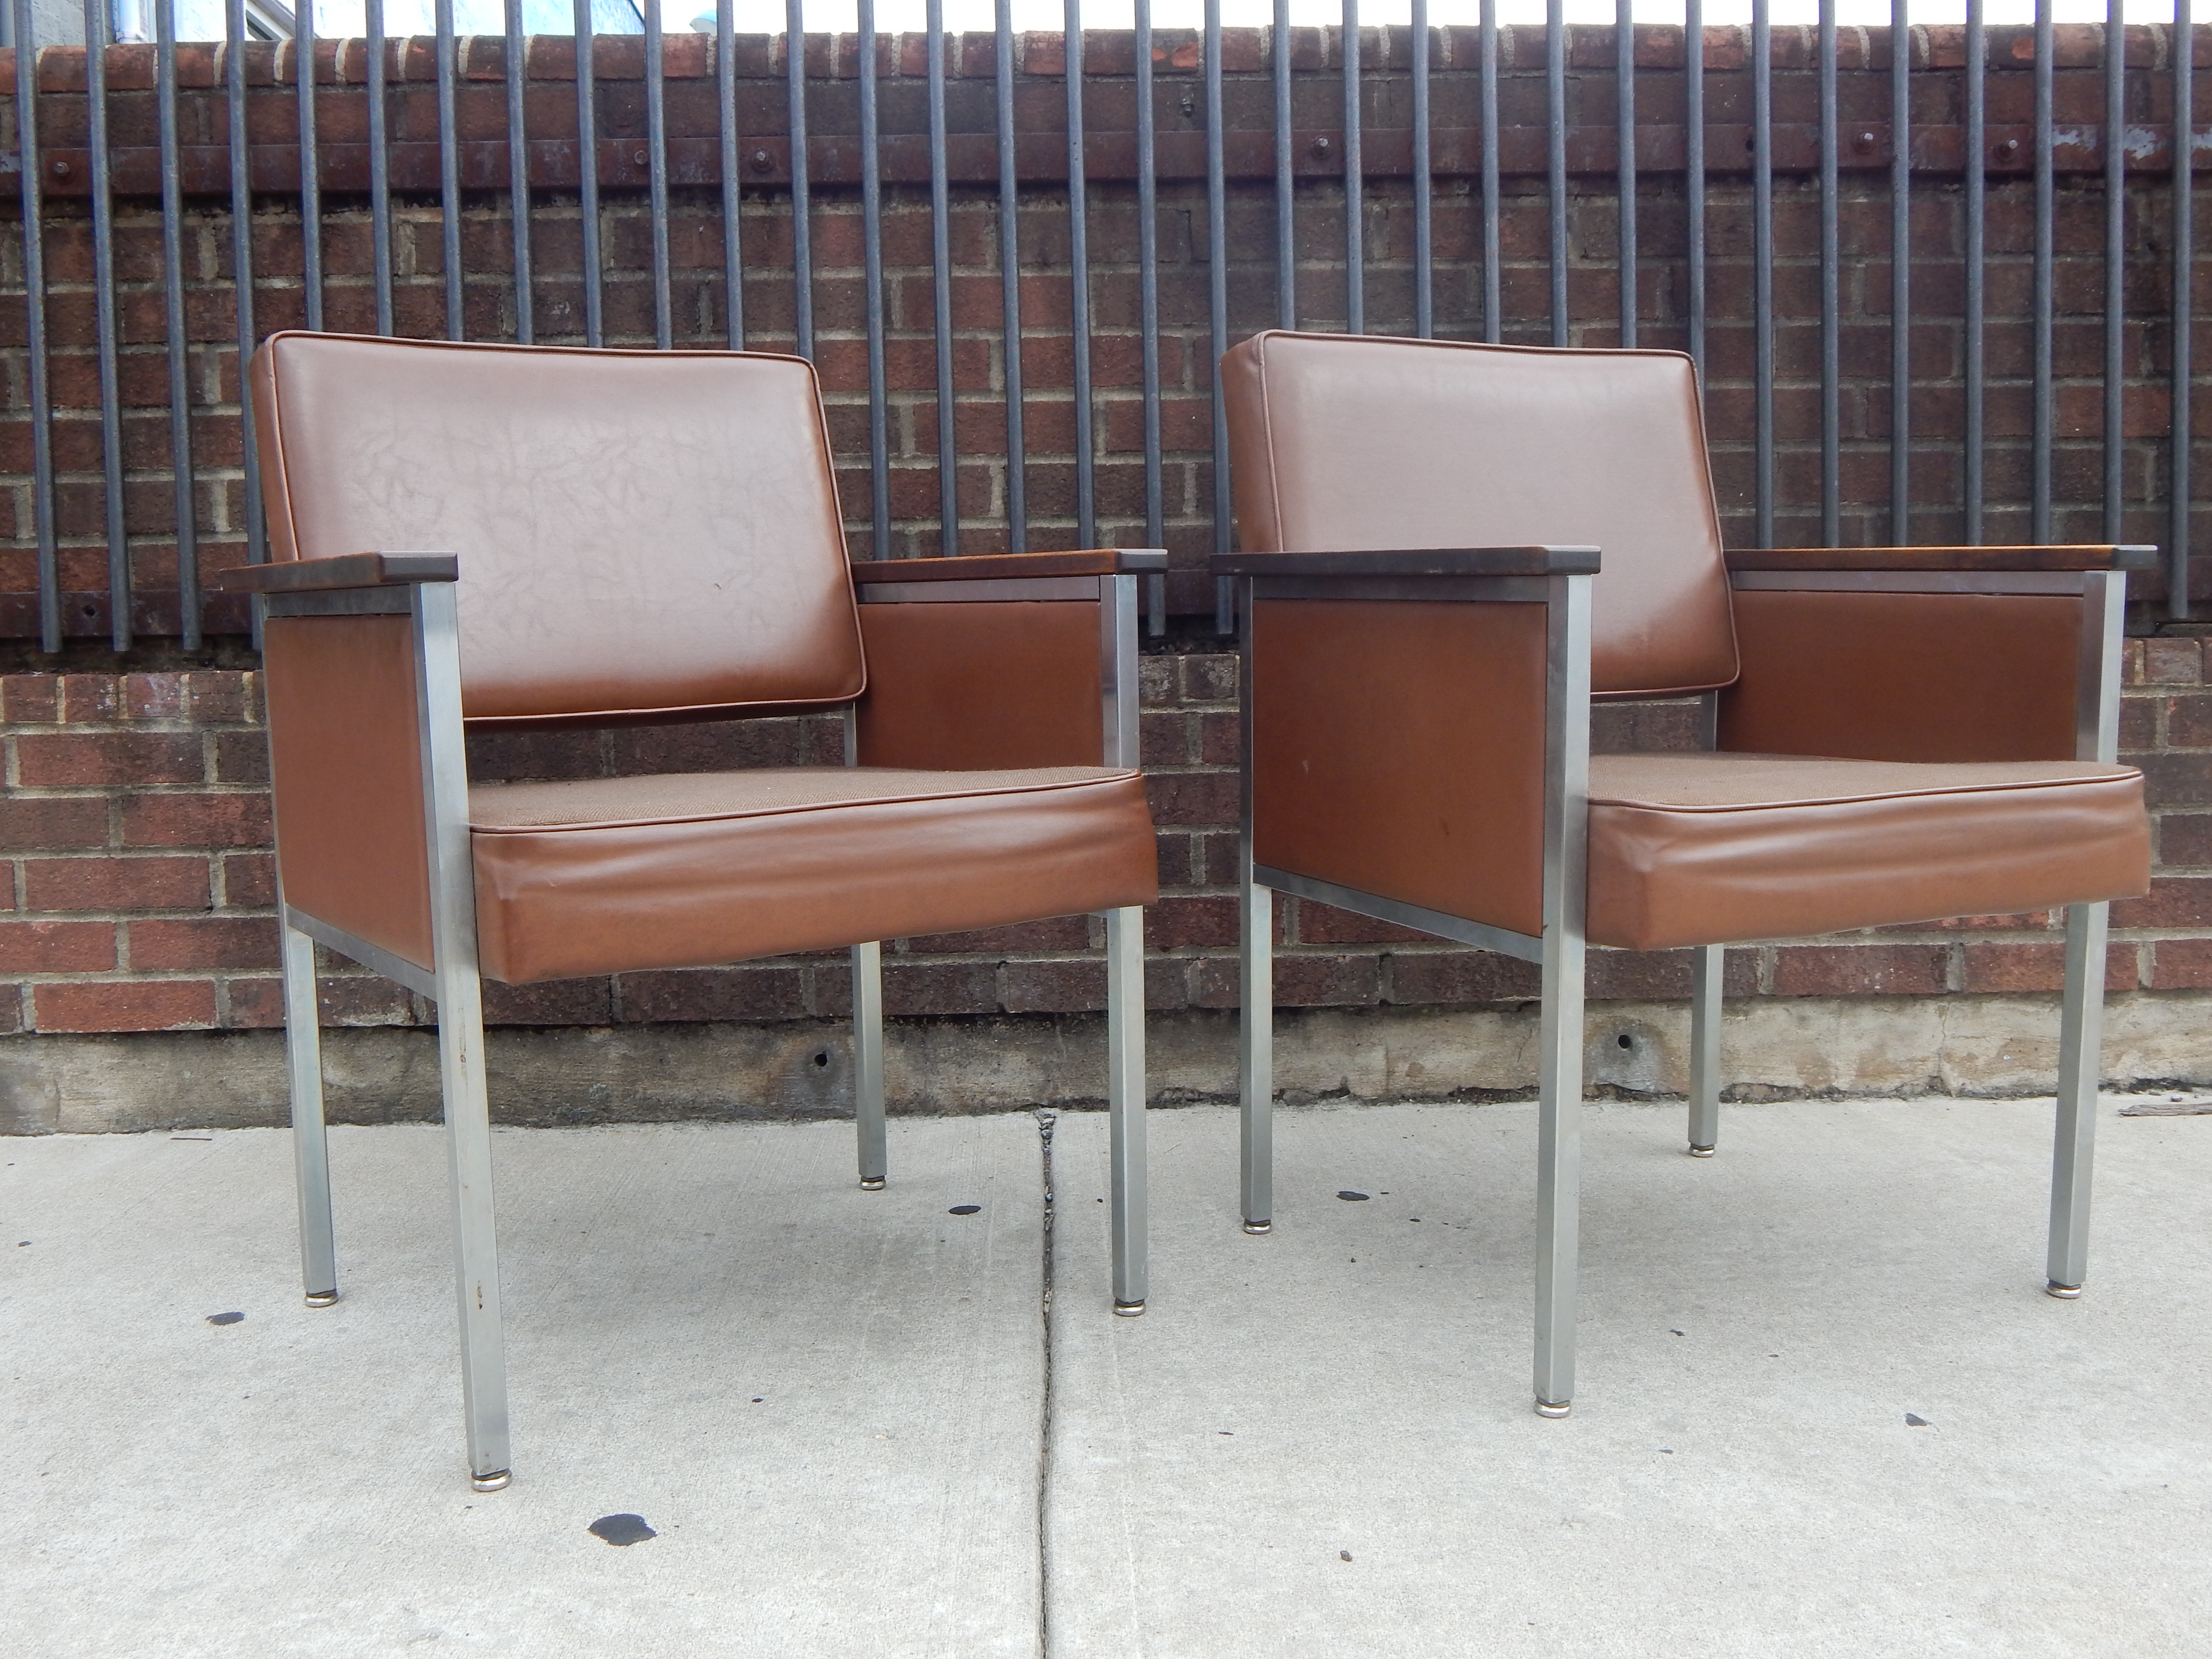 Pair Of Vintage Mid Century Office Chairs In Brown By All Steel Office Furniture Co Astute